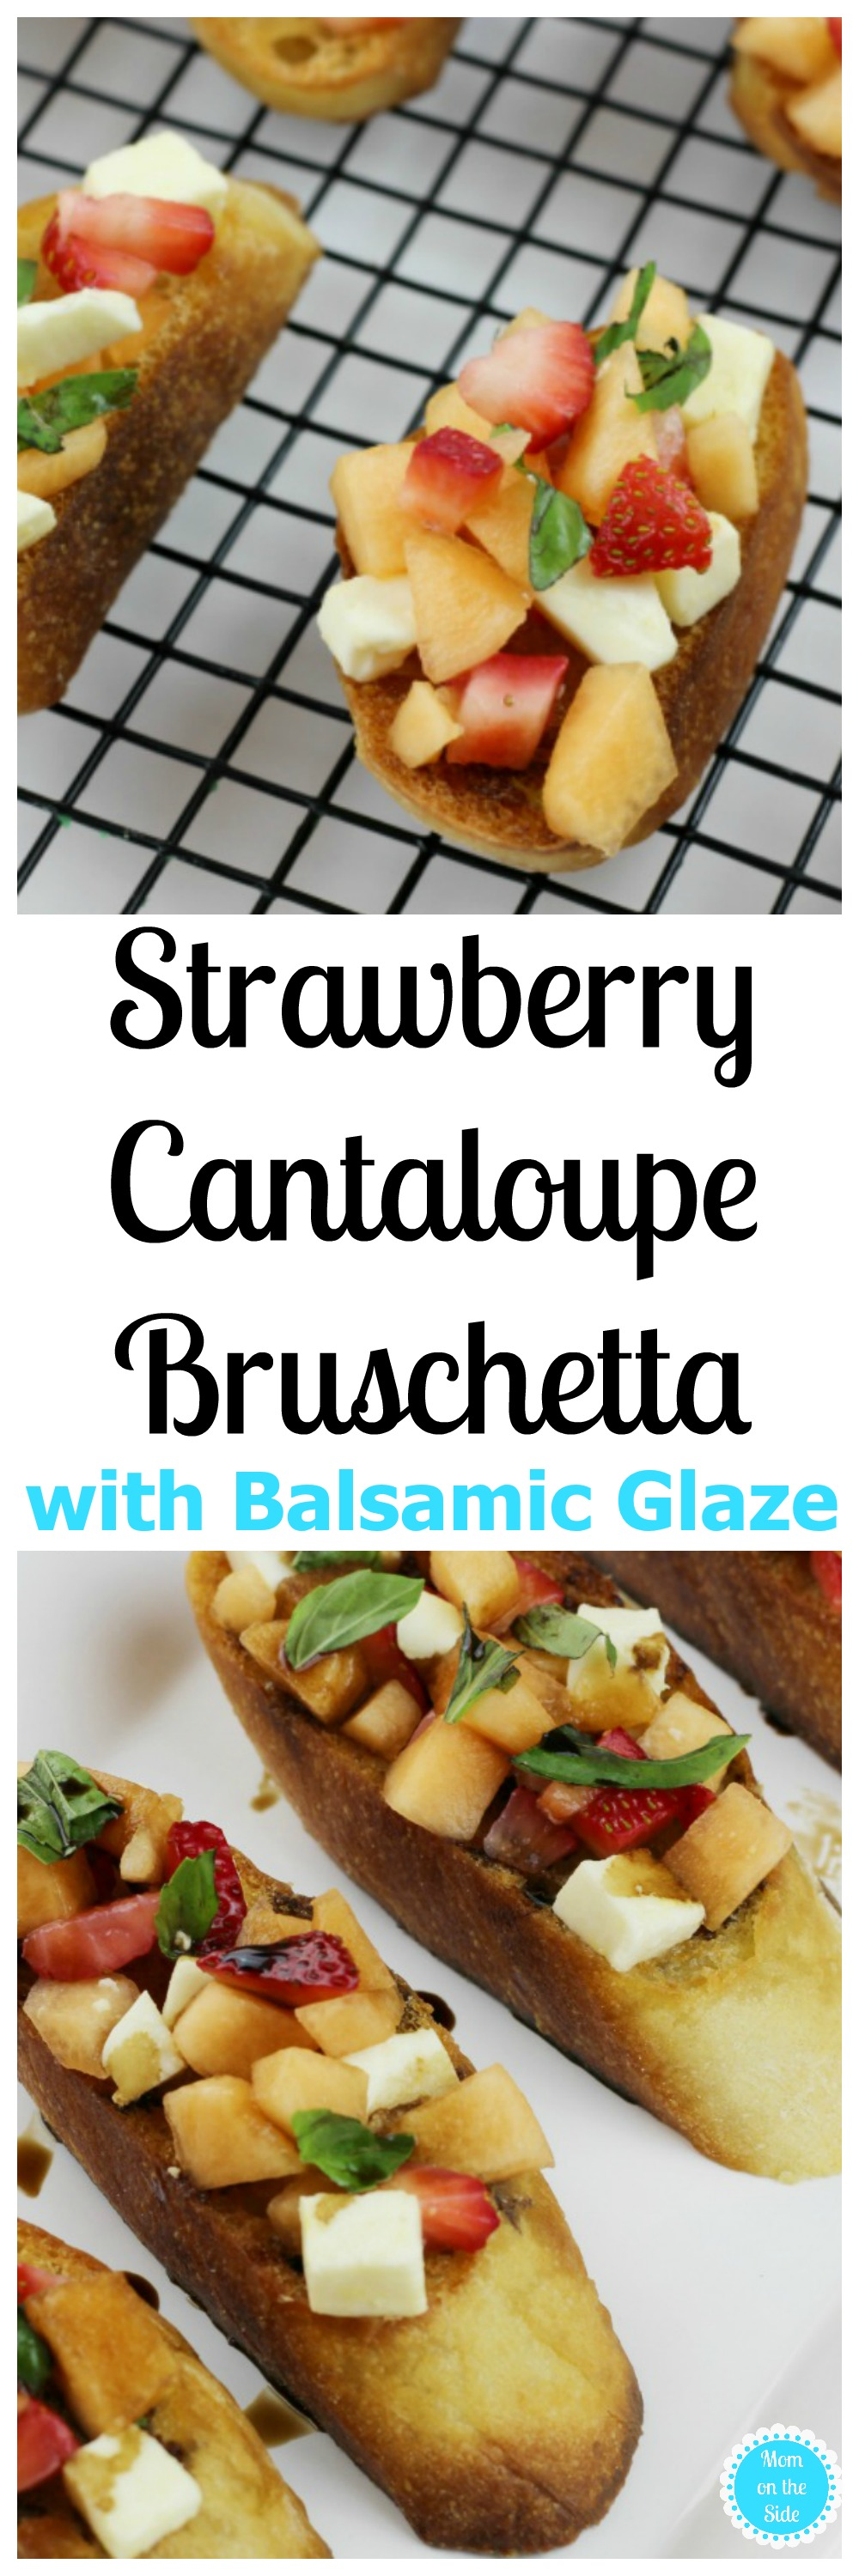 Strawberry Cantaloupe Bruschetta with Balsamic Glaze is the perfect summer appetizer or party food! Get this bruschetta recipe on Mom on the Side.